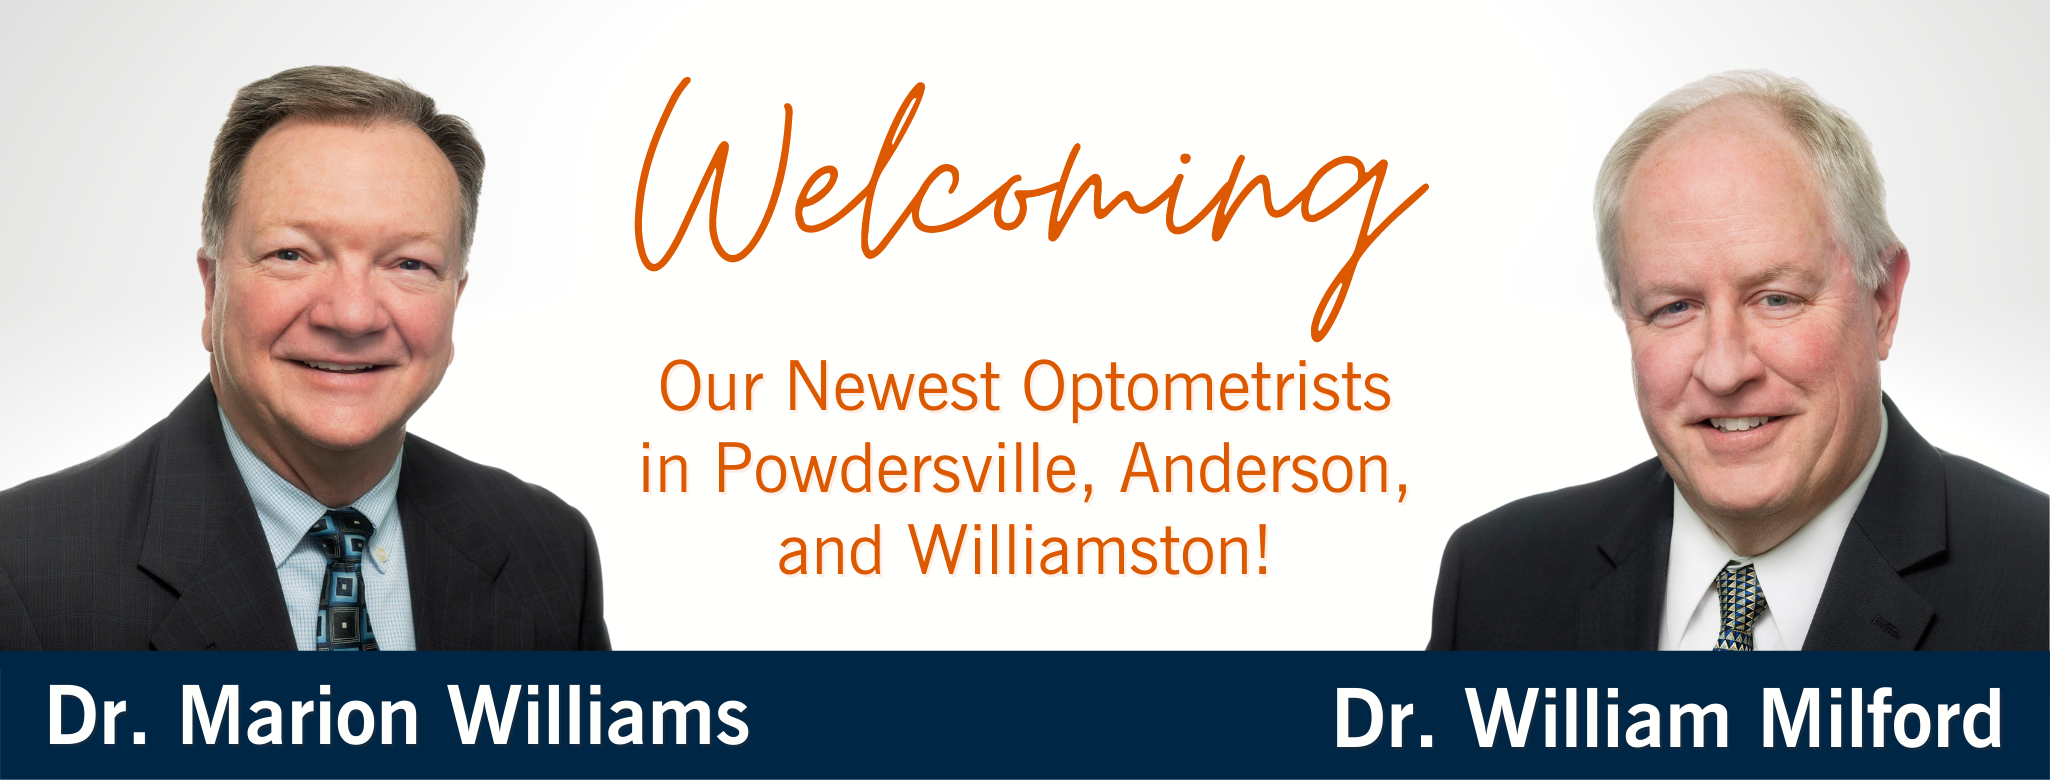 Welcoming, Our Newest Optometrists in Powdersville, Anderson, and Williamston! Dr. Marion Williams and Dr. William Milford